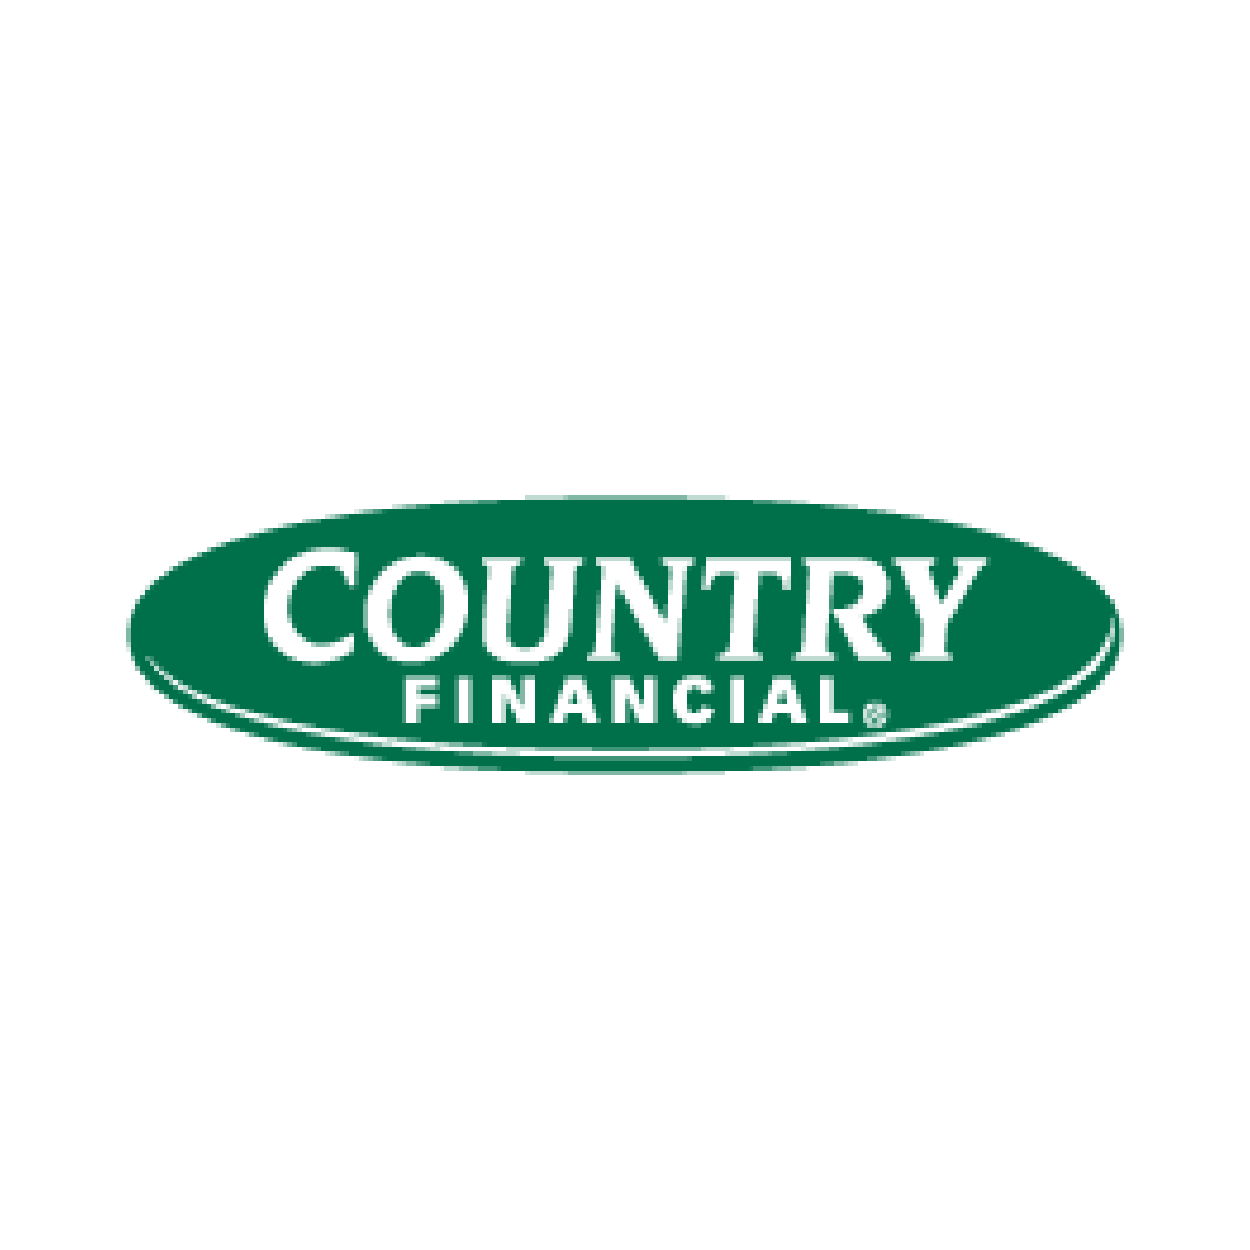 CountryFin.png